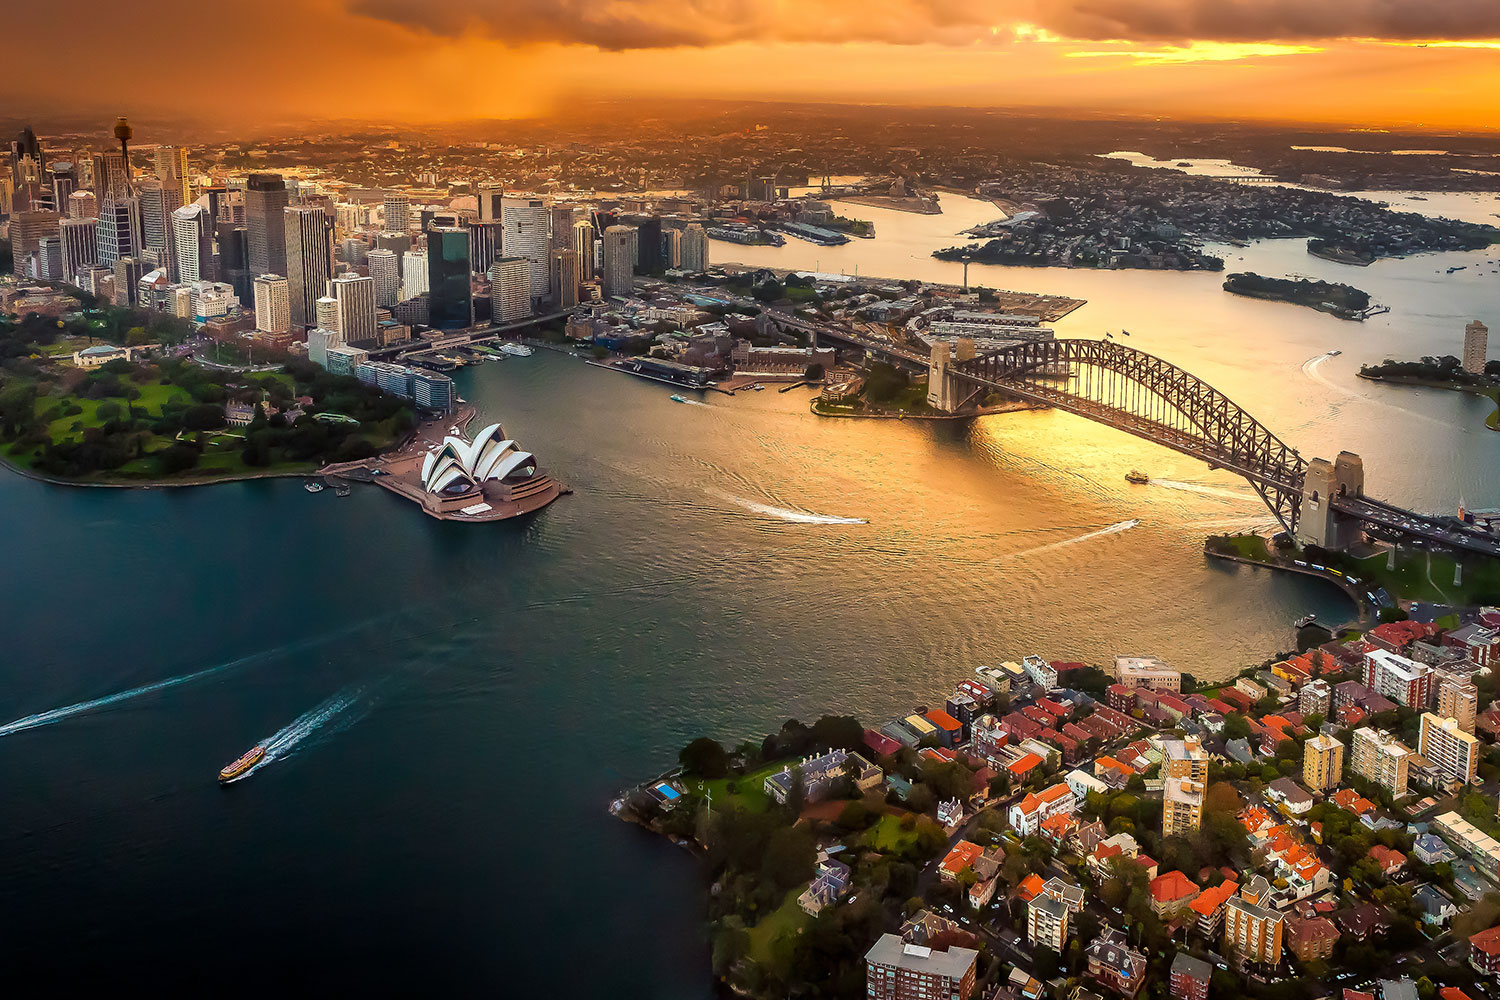 Sydney places third in 2019 World's Most Liveable Cities index